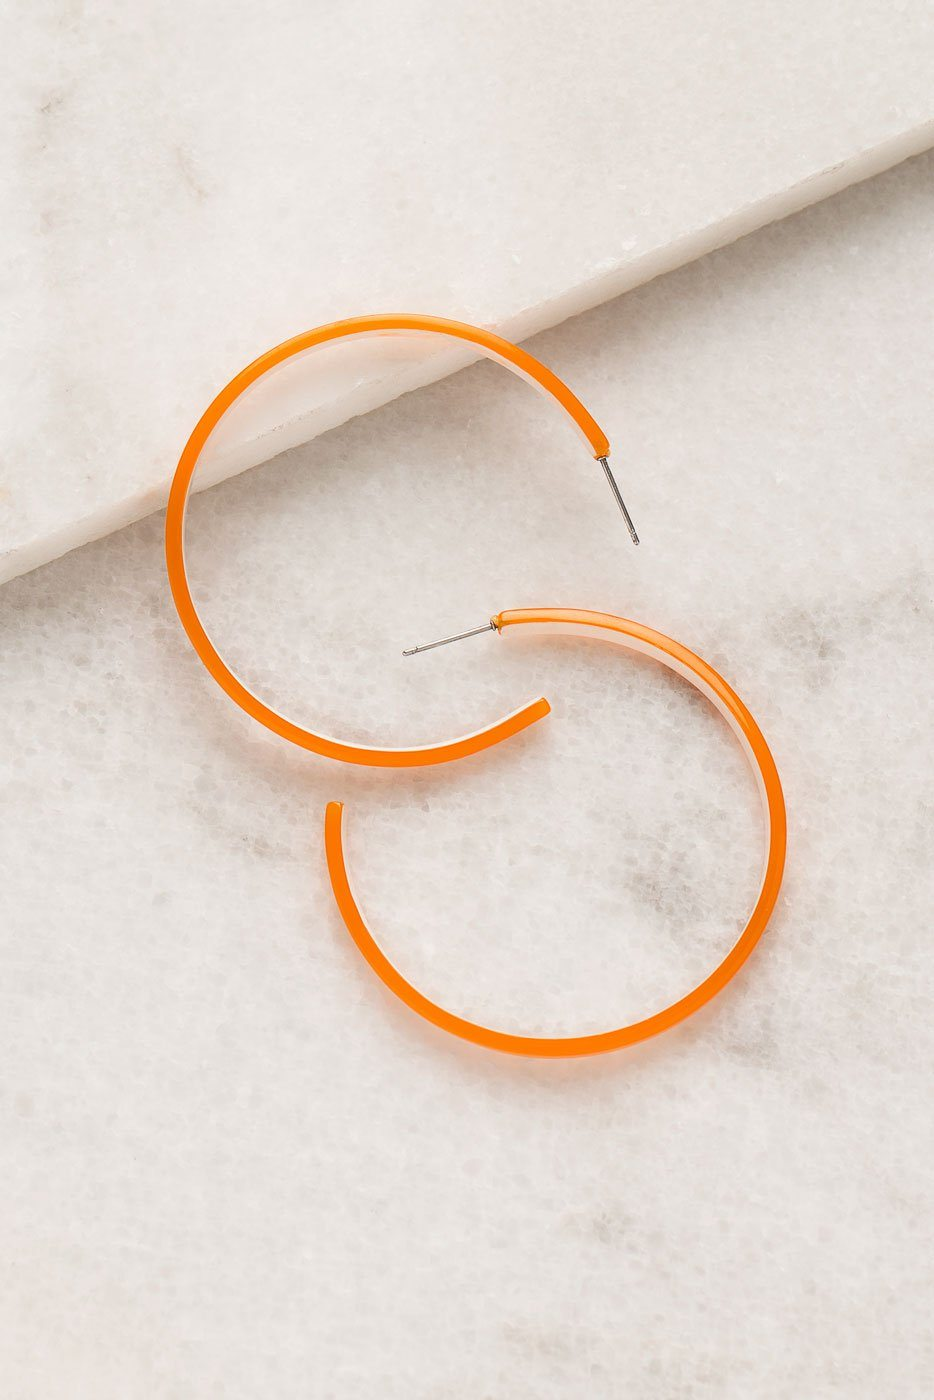 XOXO Orange Acrylic Hoop Earrings | Shop Priceless